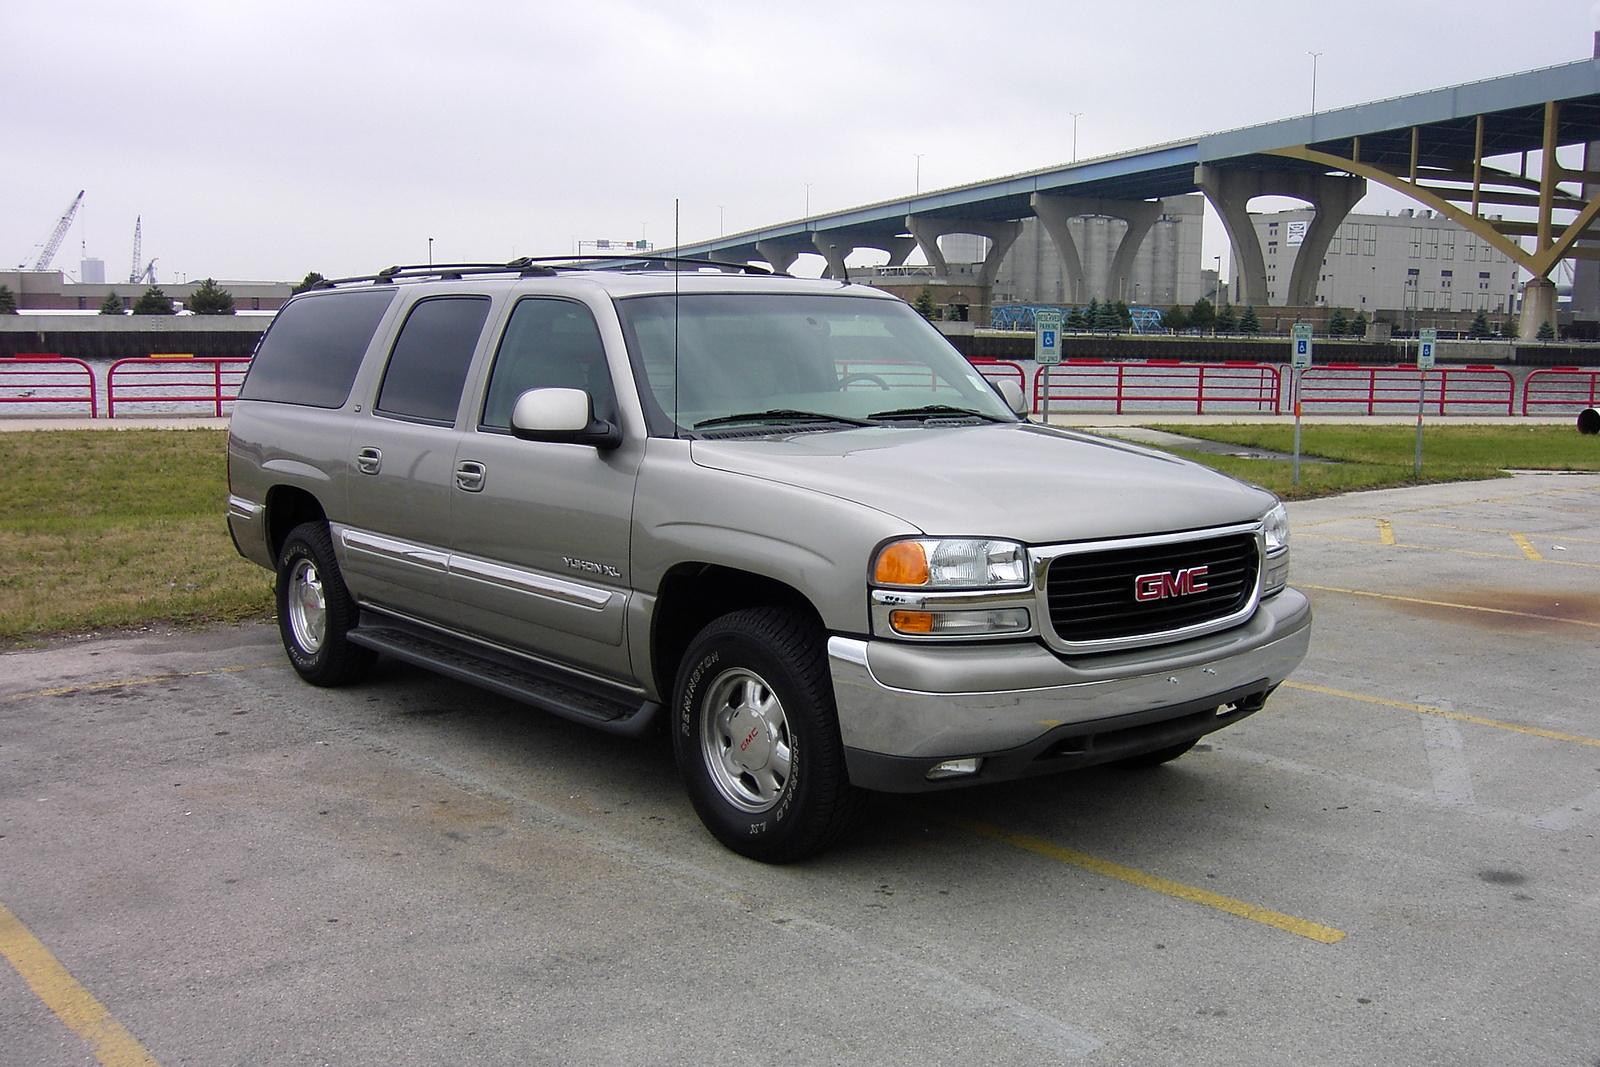 Picture of 2005 GMC Yukon XL 4 Dr 1500 SLT SUV